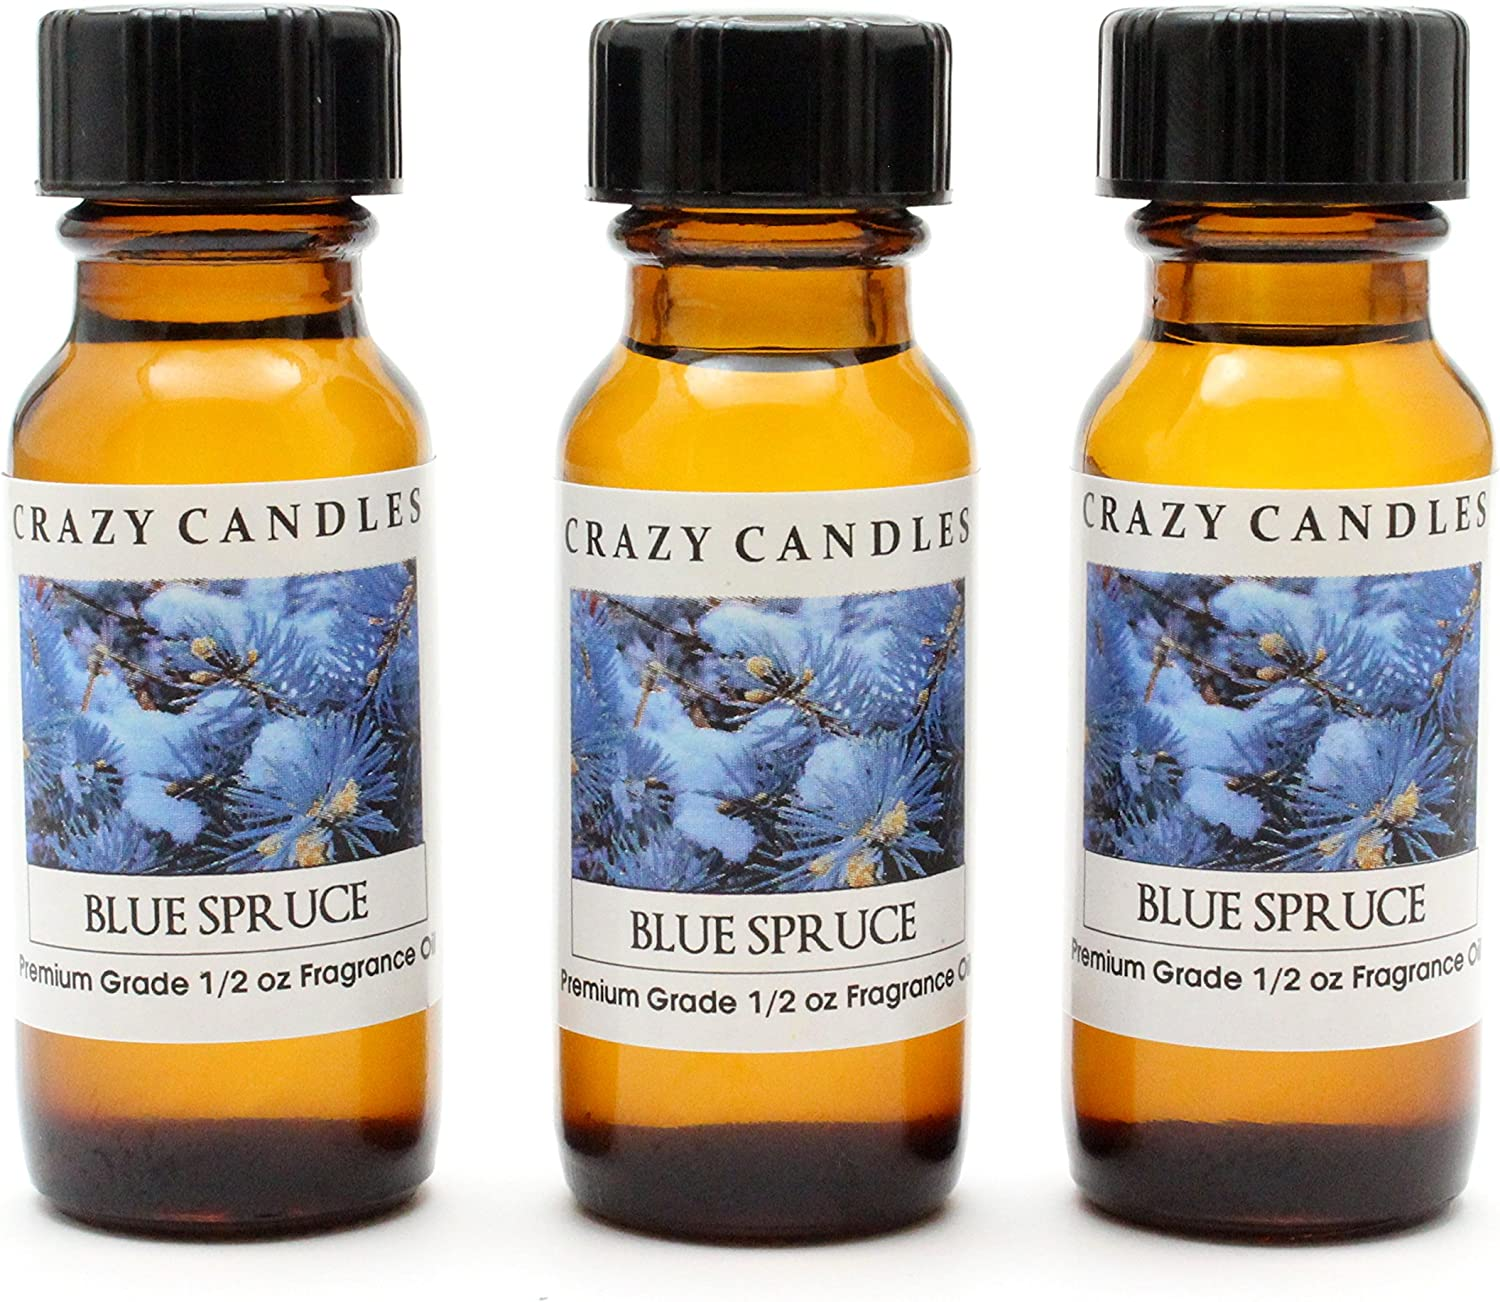 Crazy Candles Blue Spruce (Made in USA) 3 Bottles 1/2 Fl Oz Each (15ml) Premium Grade Scented Fragrance Oil (Bluespruce an Excellent Christmas Tree Aroma)